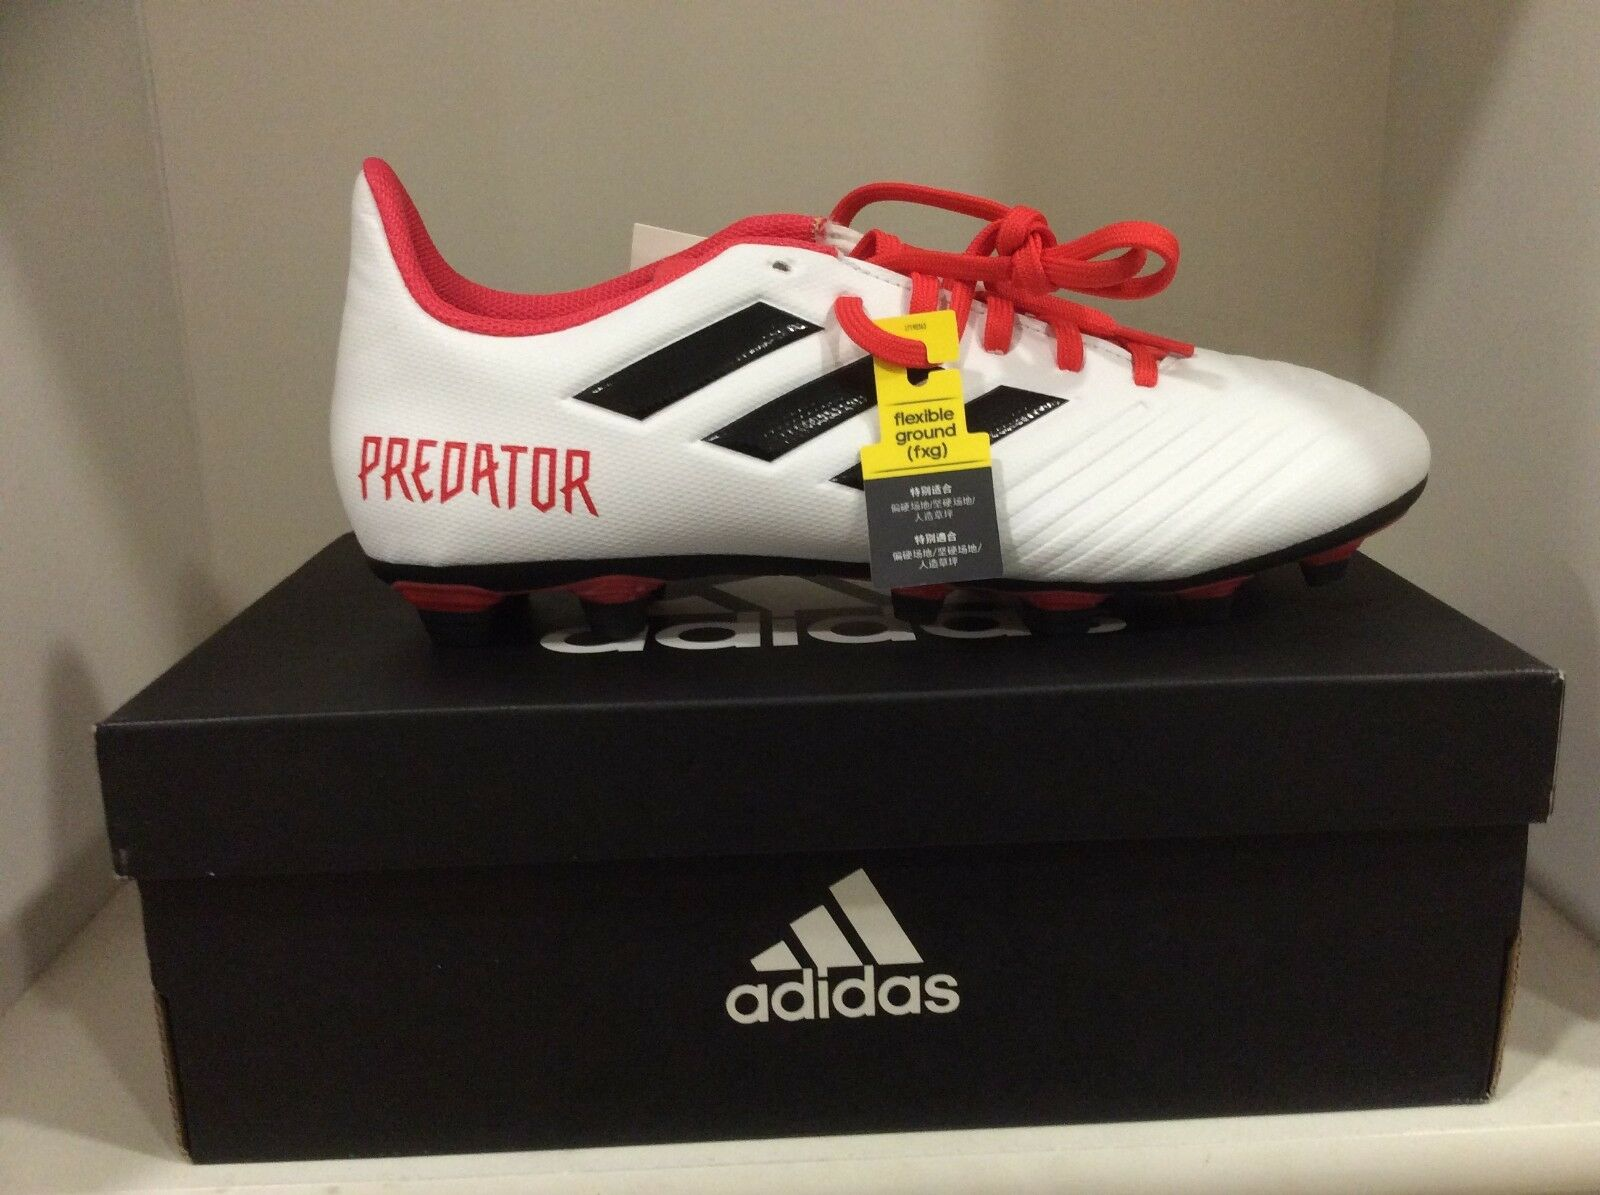 Adidas Predator 18.4 FXG Firm Ground Soccer Cleats Adult Sizes